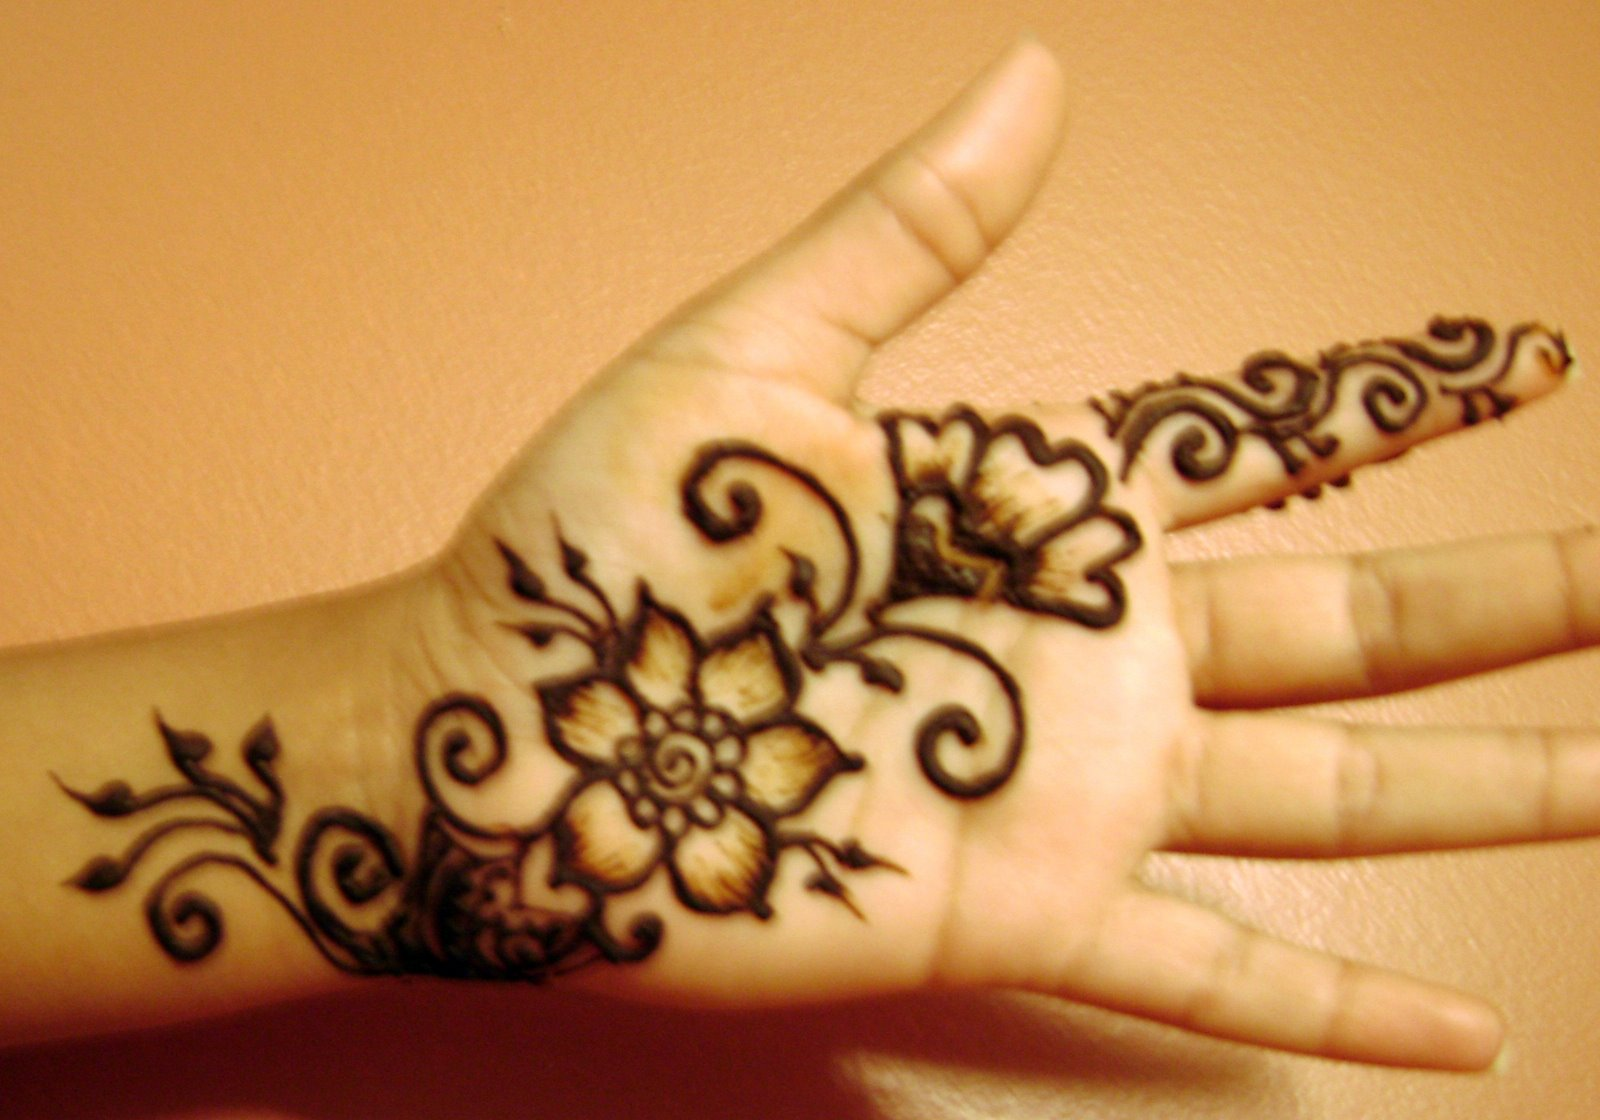 Easy Mehndi Patterns On Paper : Book of very easy mehndi designs for children in ireland by mia